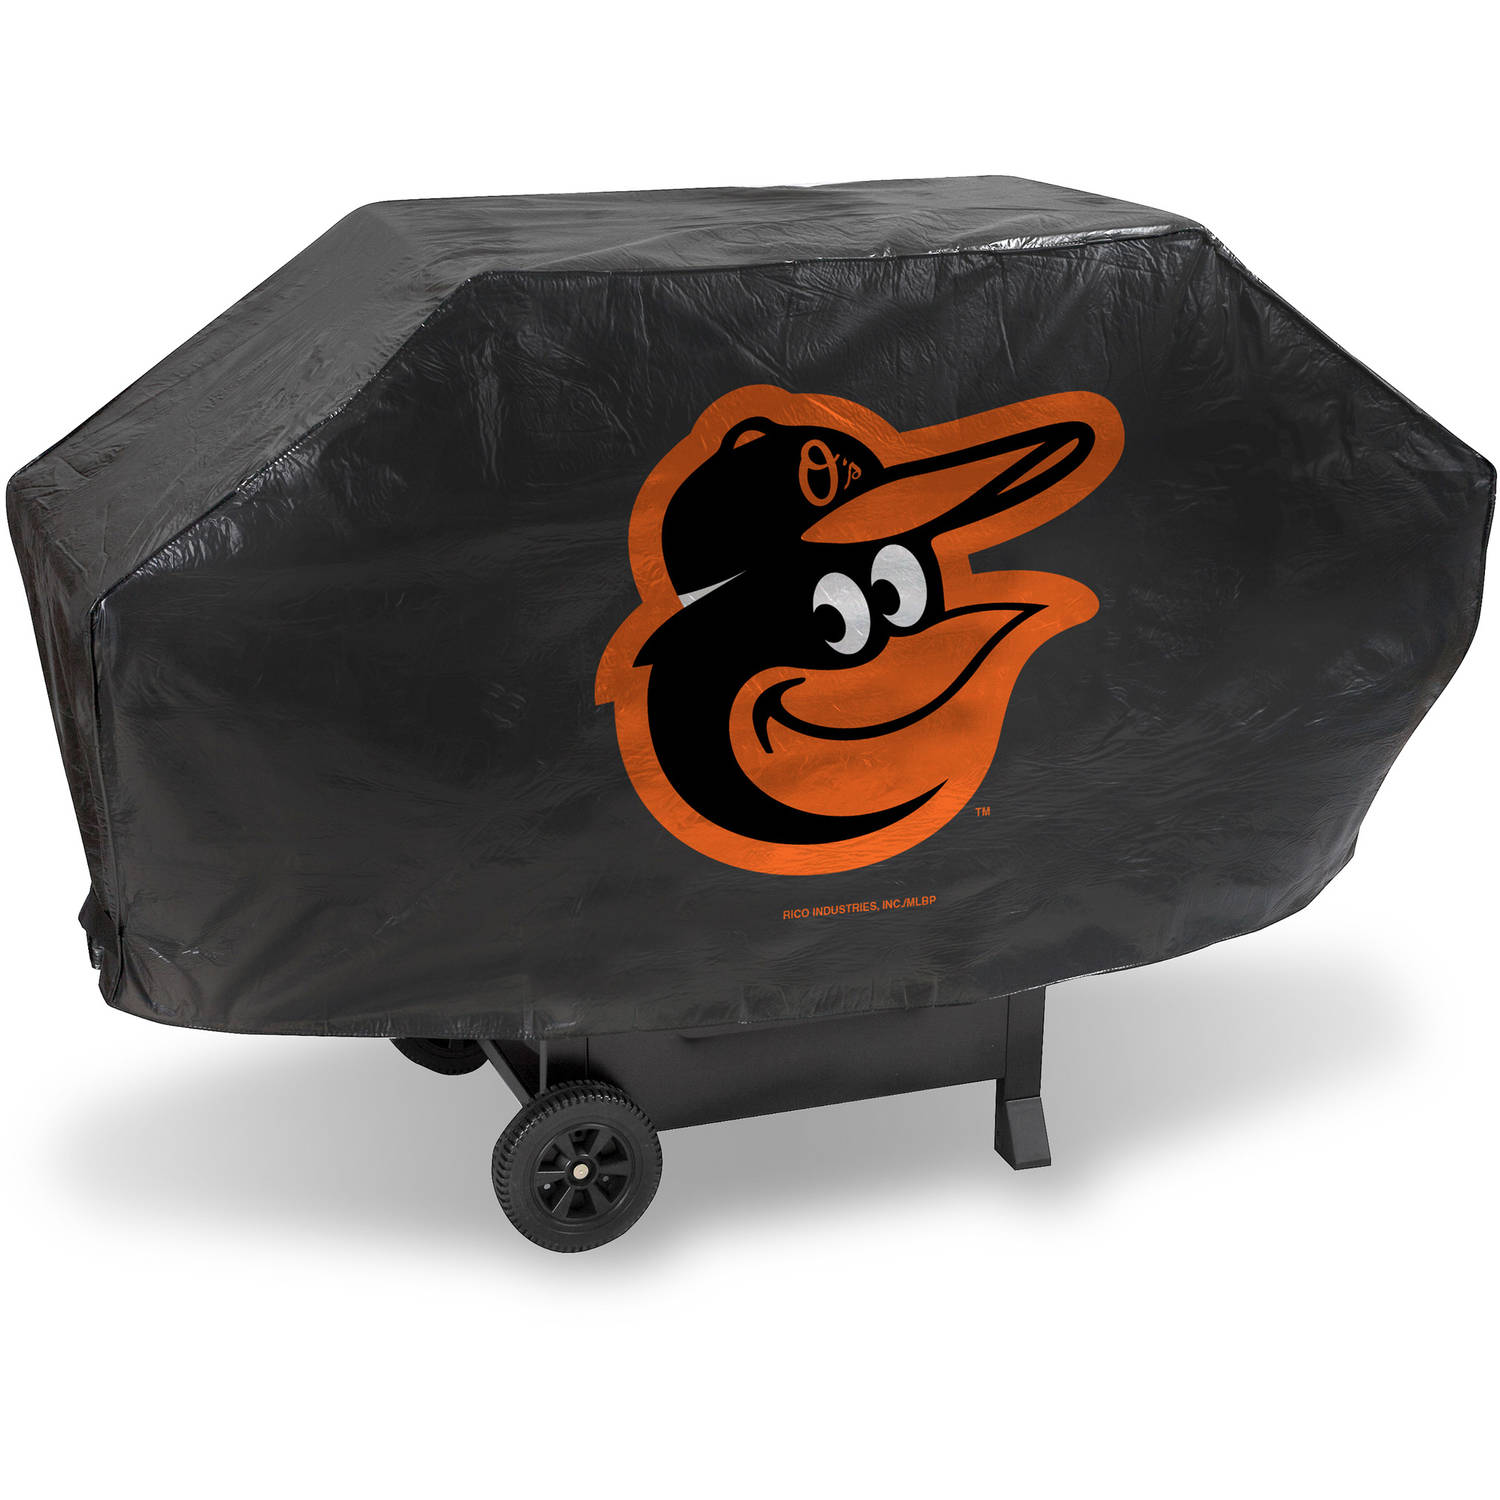 MLB Rico Industries Deluxe Grill Cover, Baltimore Orioles